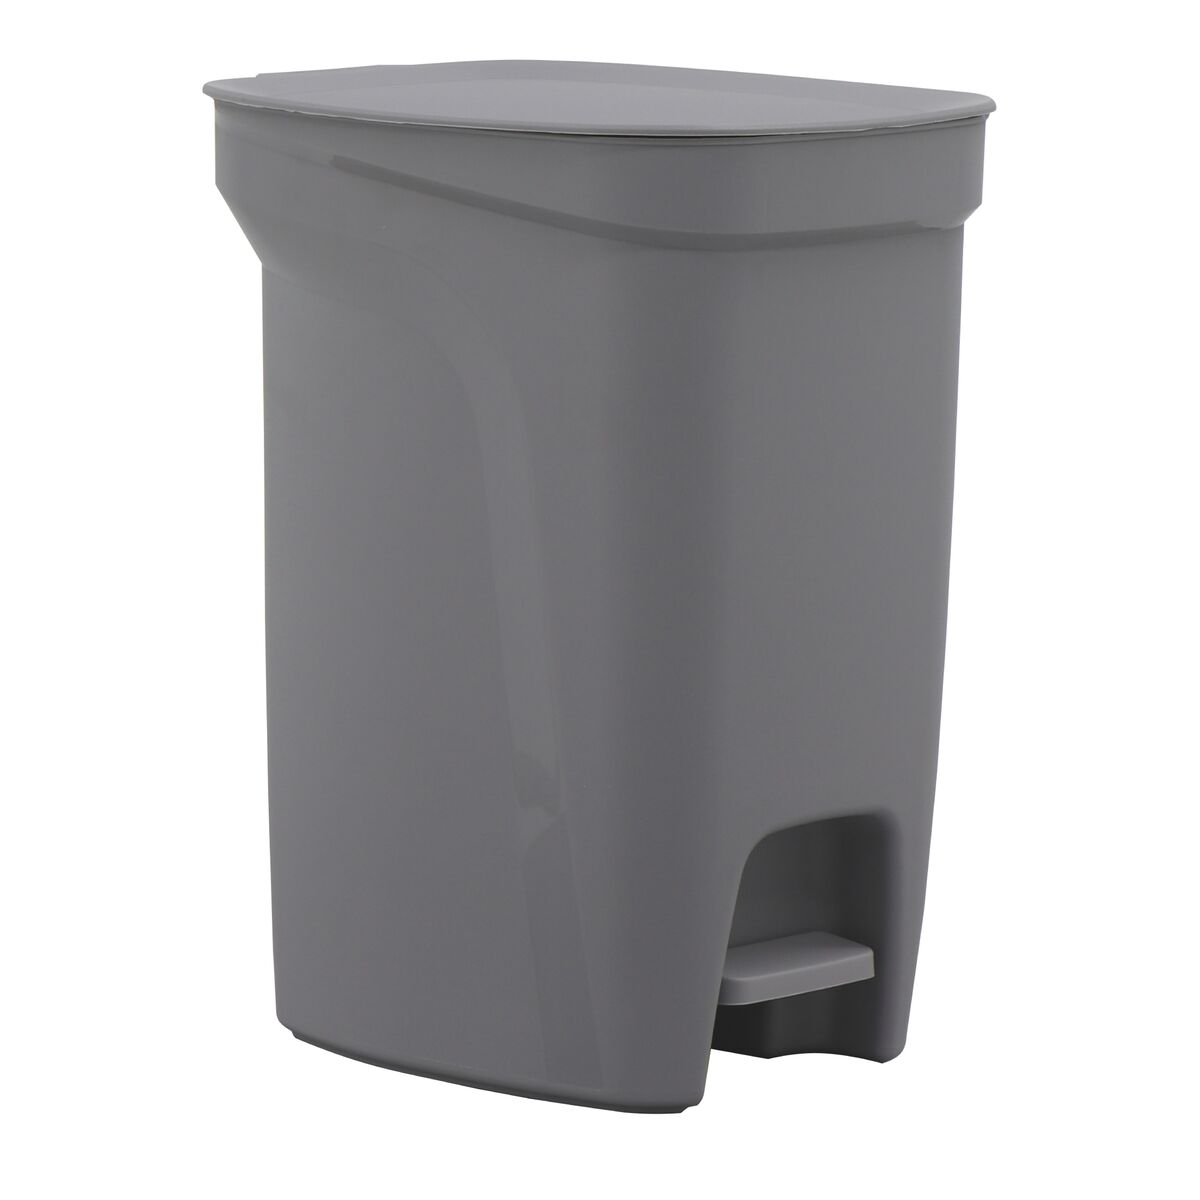 Tramontina Compact Gray Polypropylene Compact Trash Can with a Galvanized Steel Rod 10L